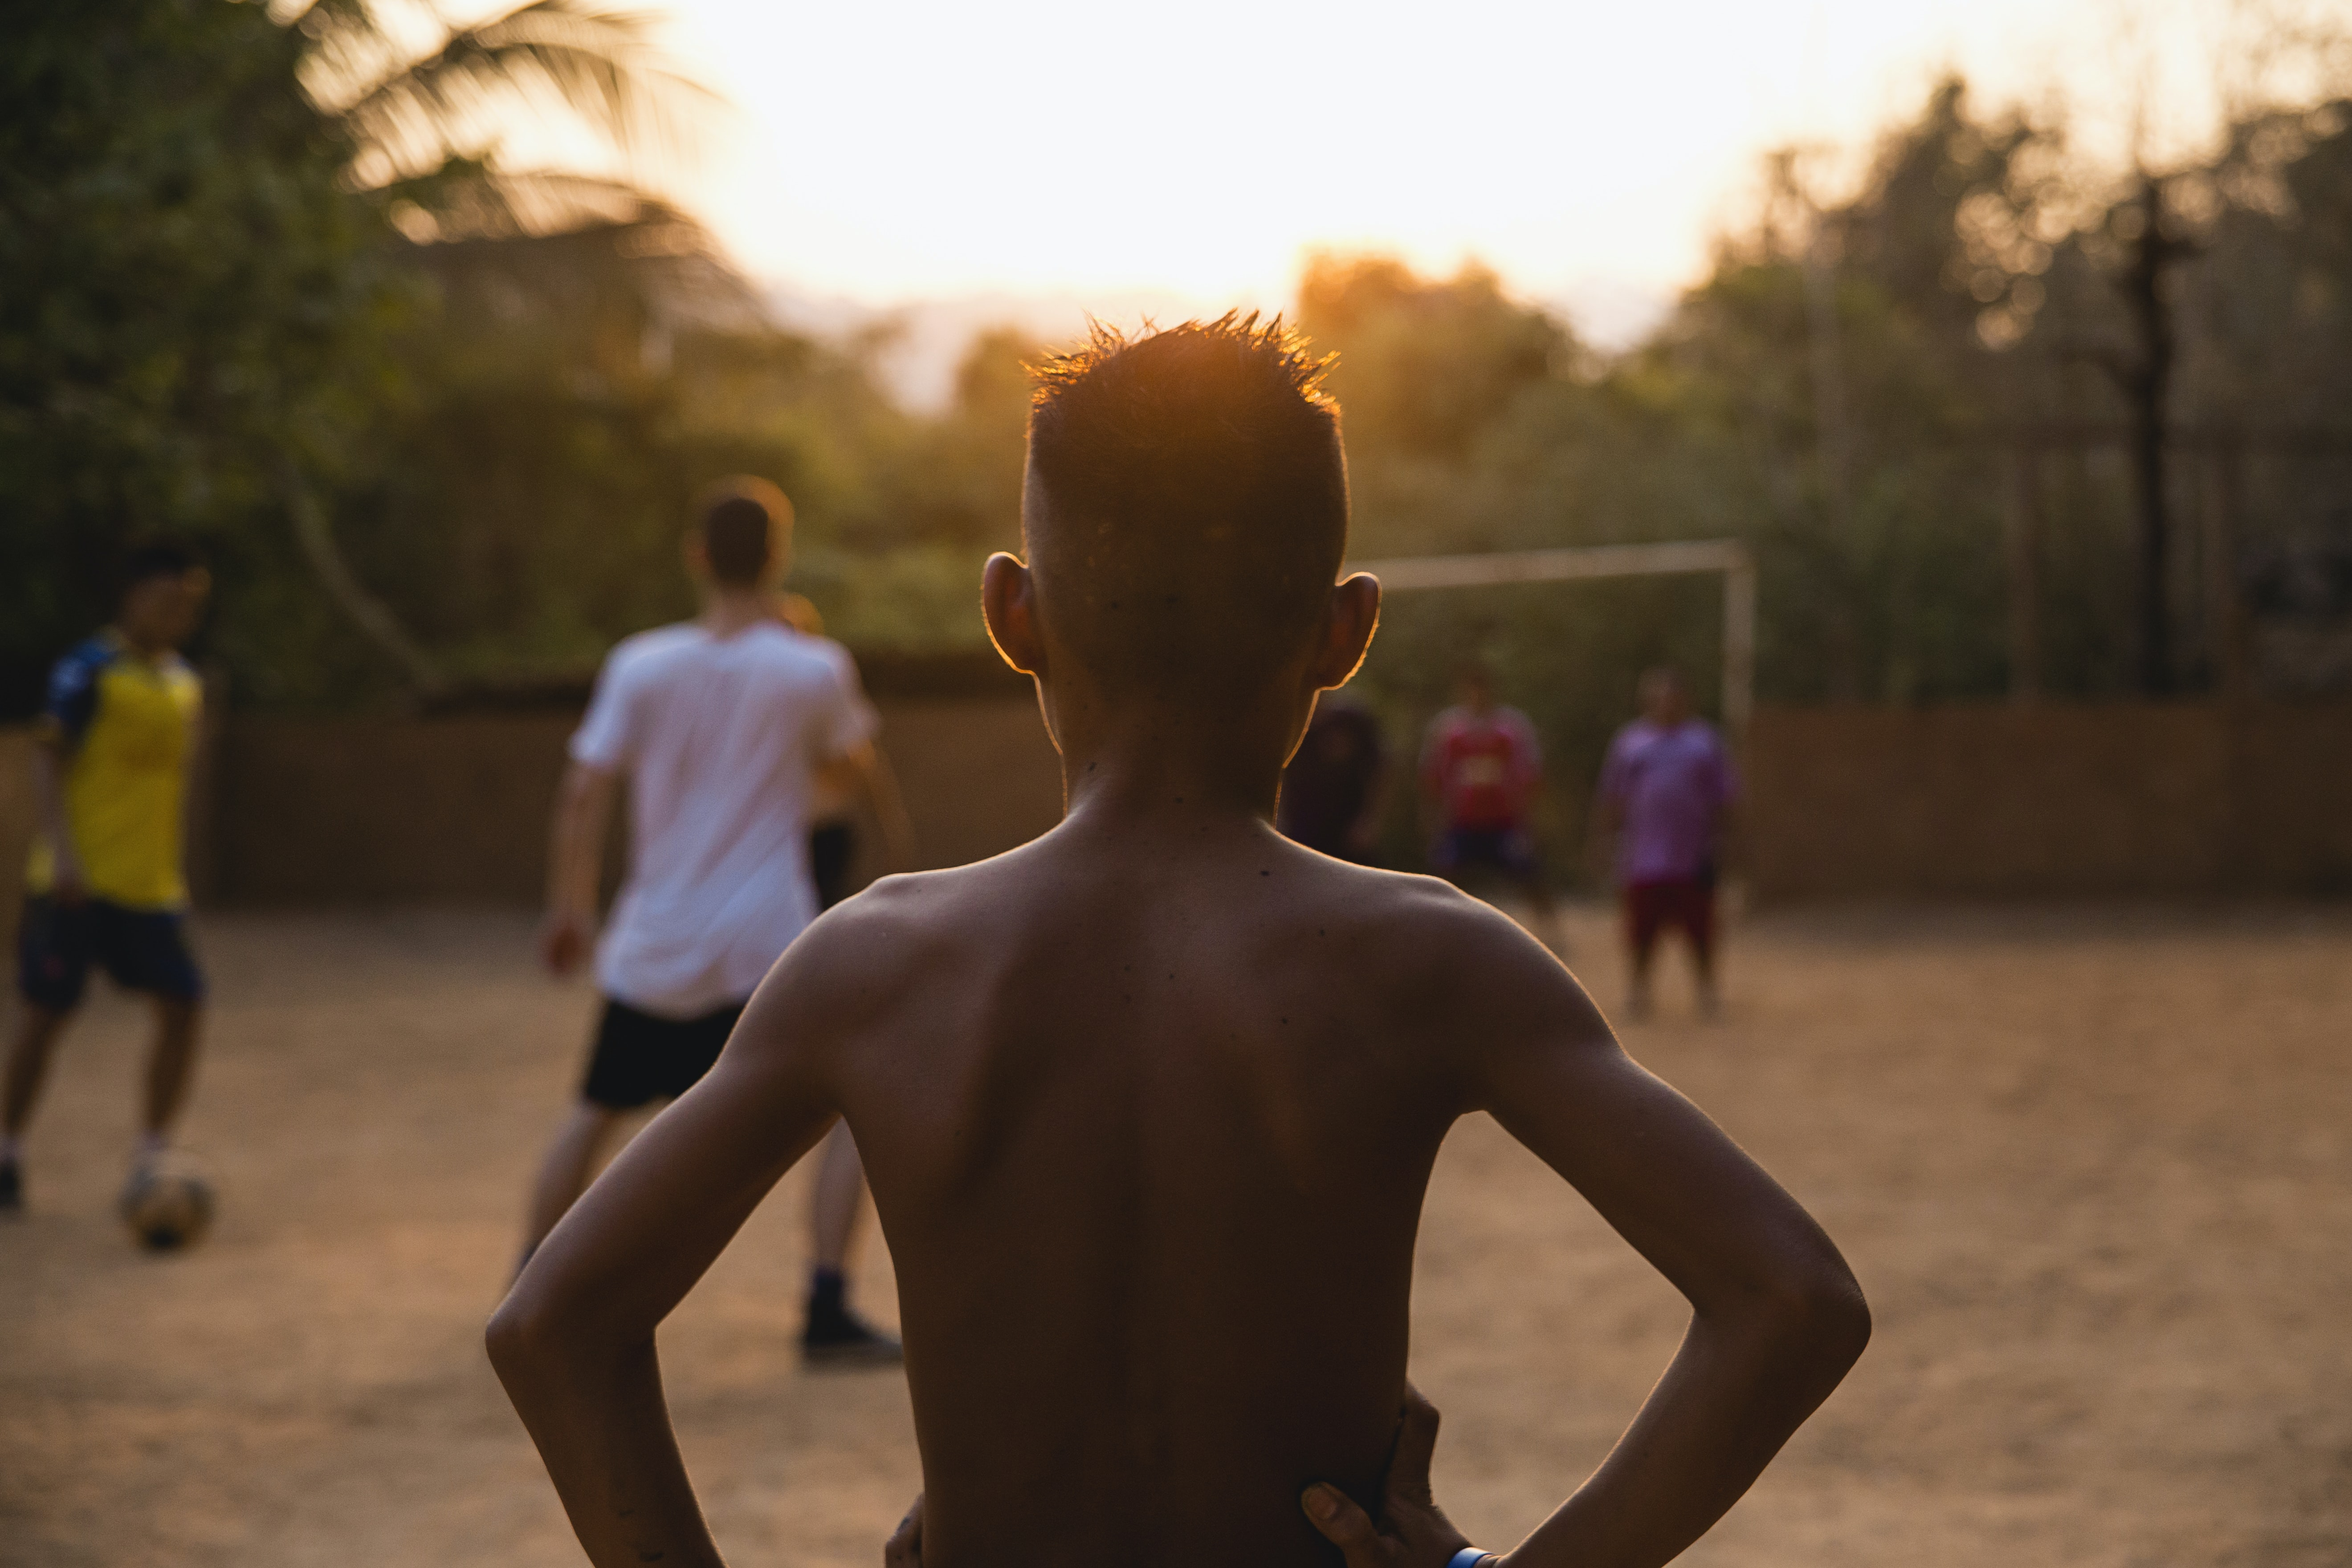 A shirtless African American boy watching a soccer game.